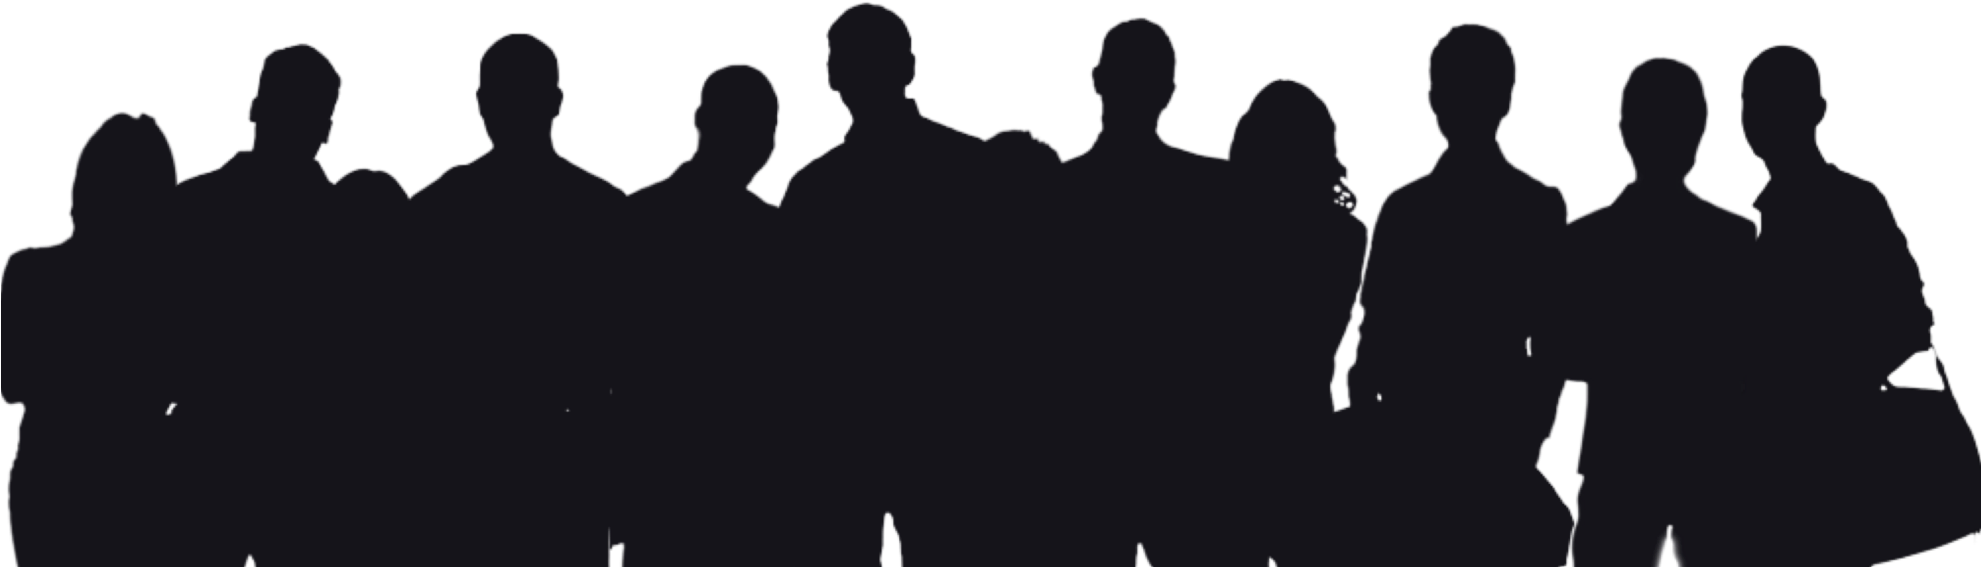 Person Shadow Png.